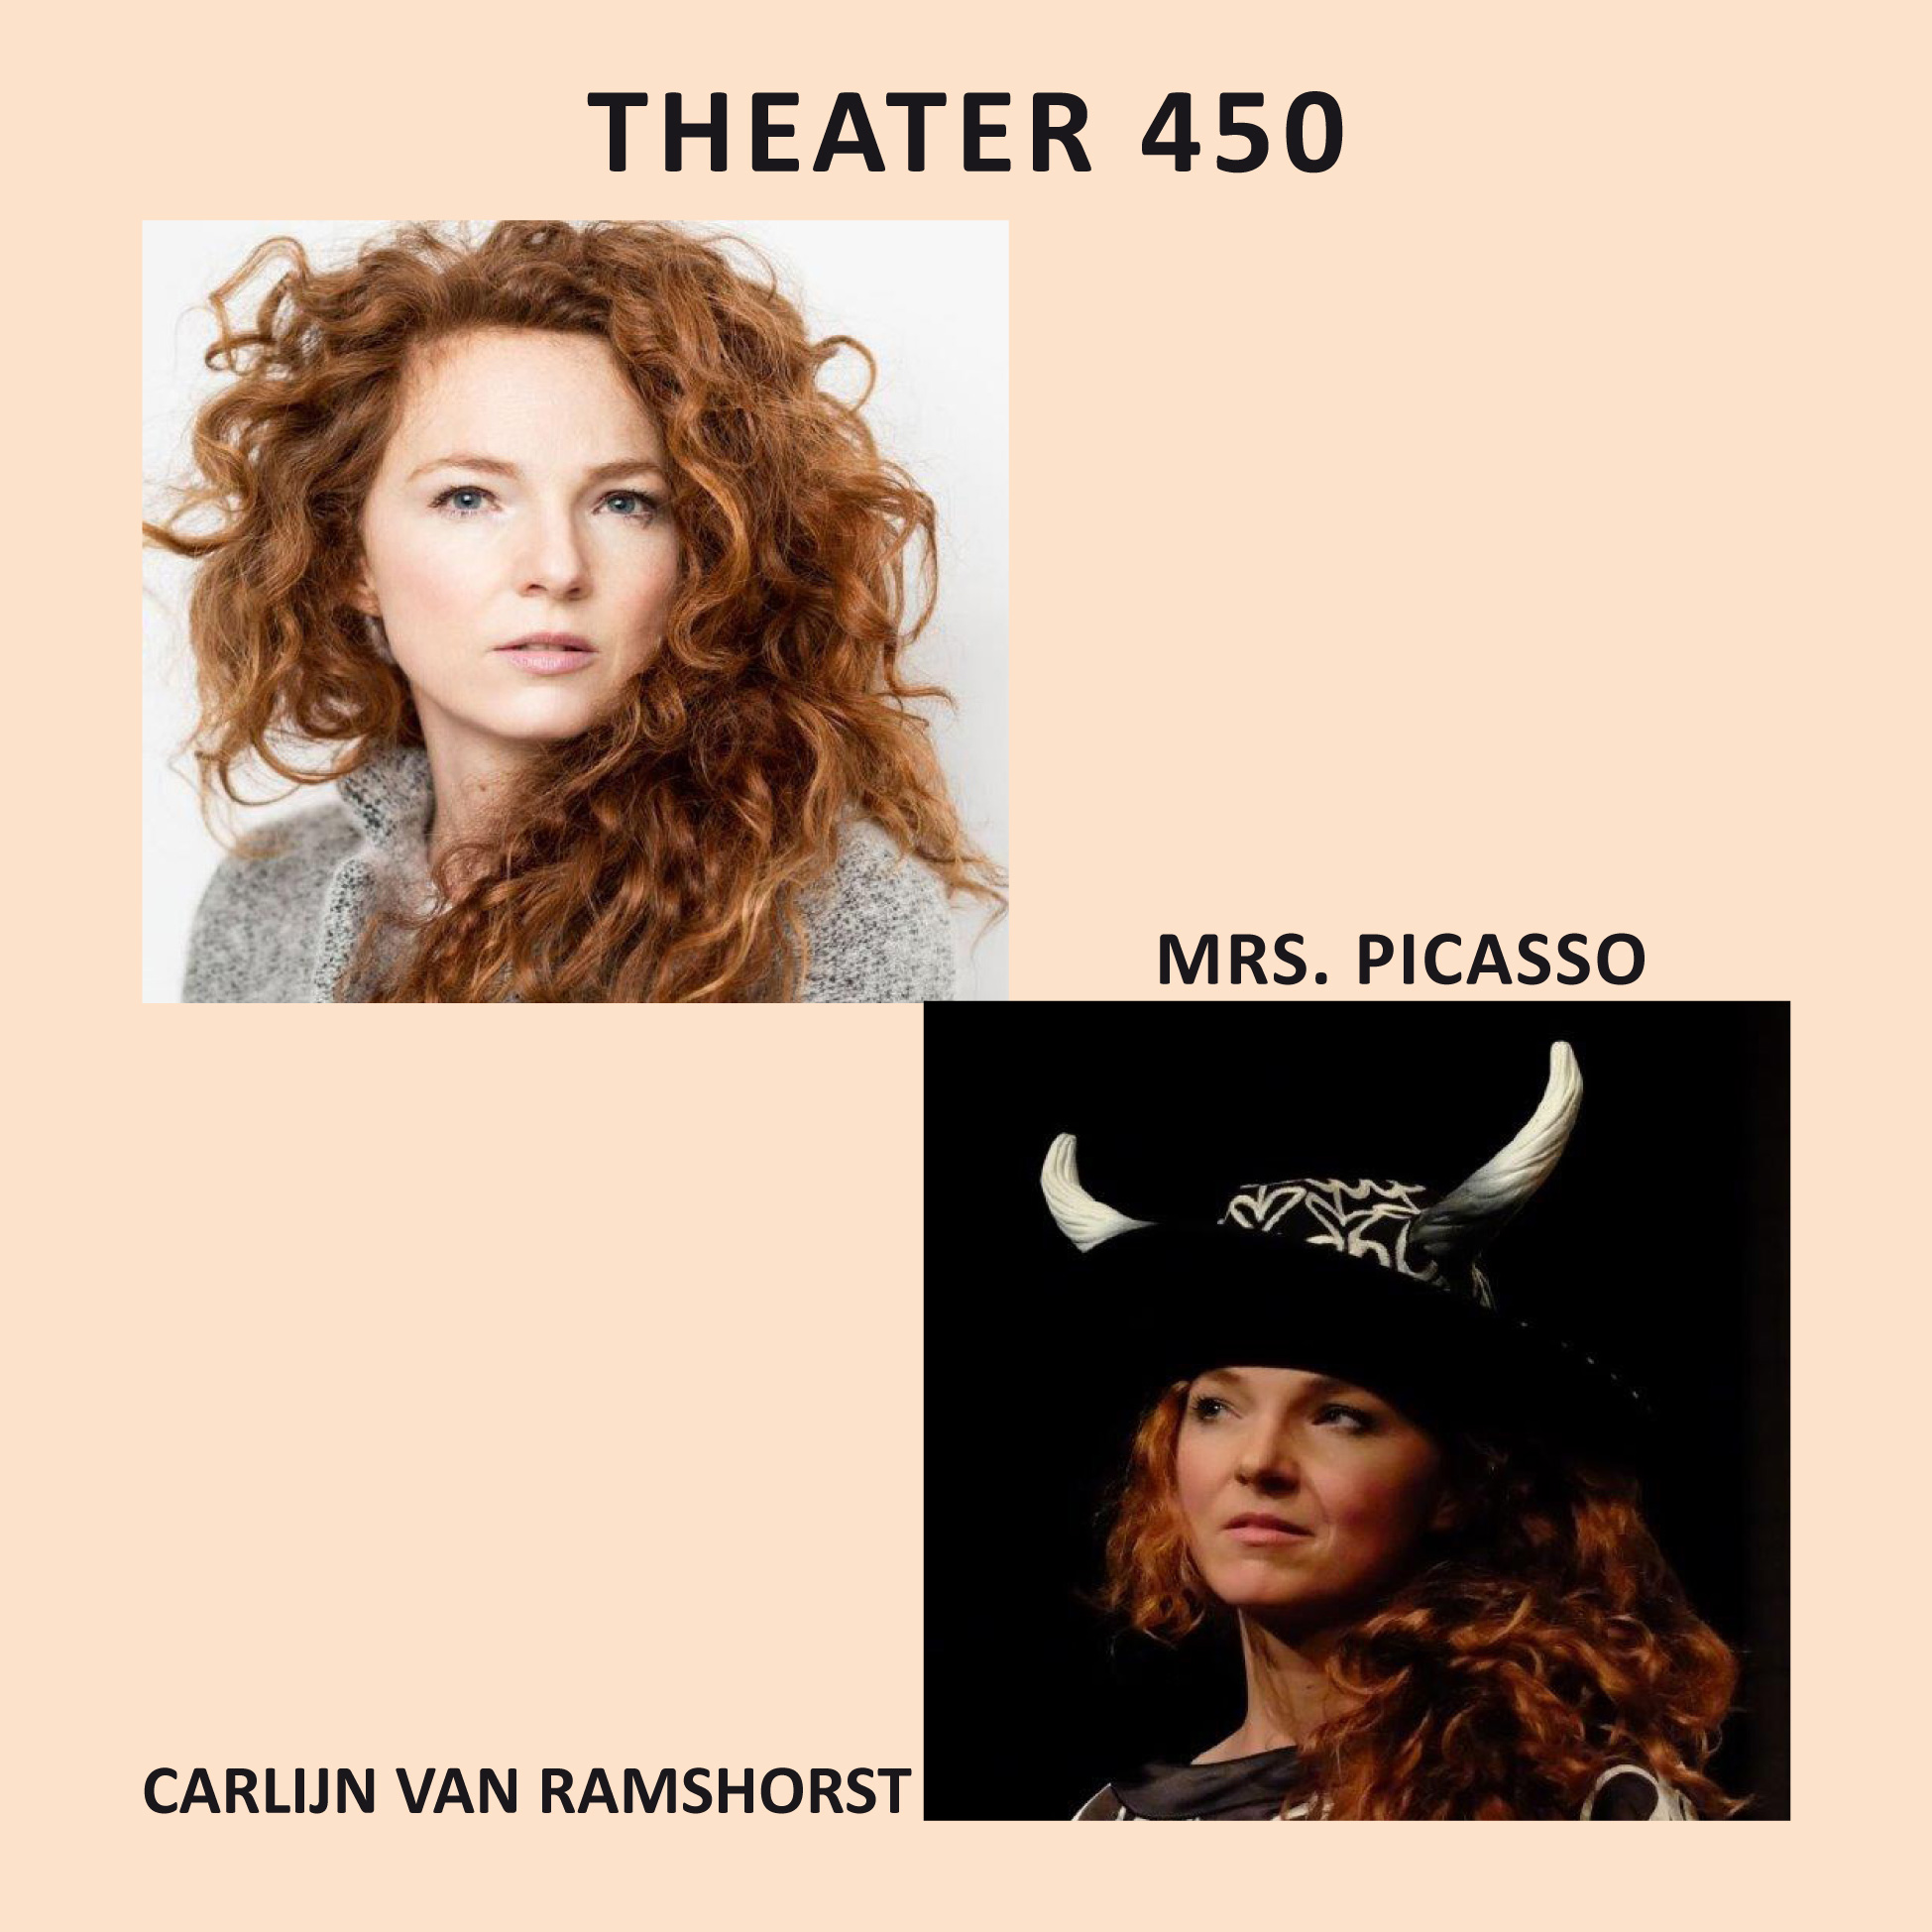 Theater 450: Uitnodiging oktober 2018